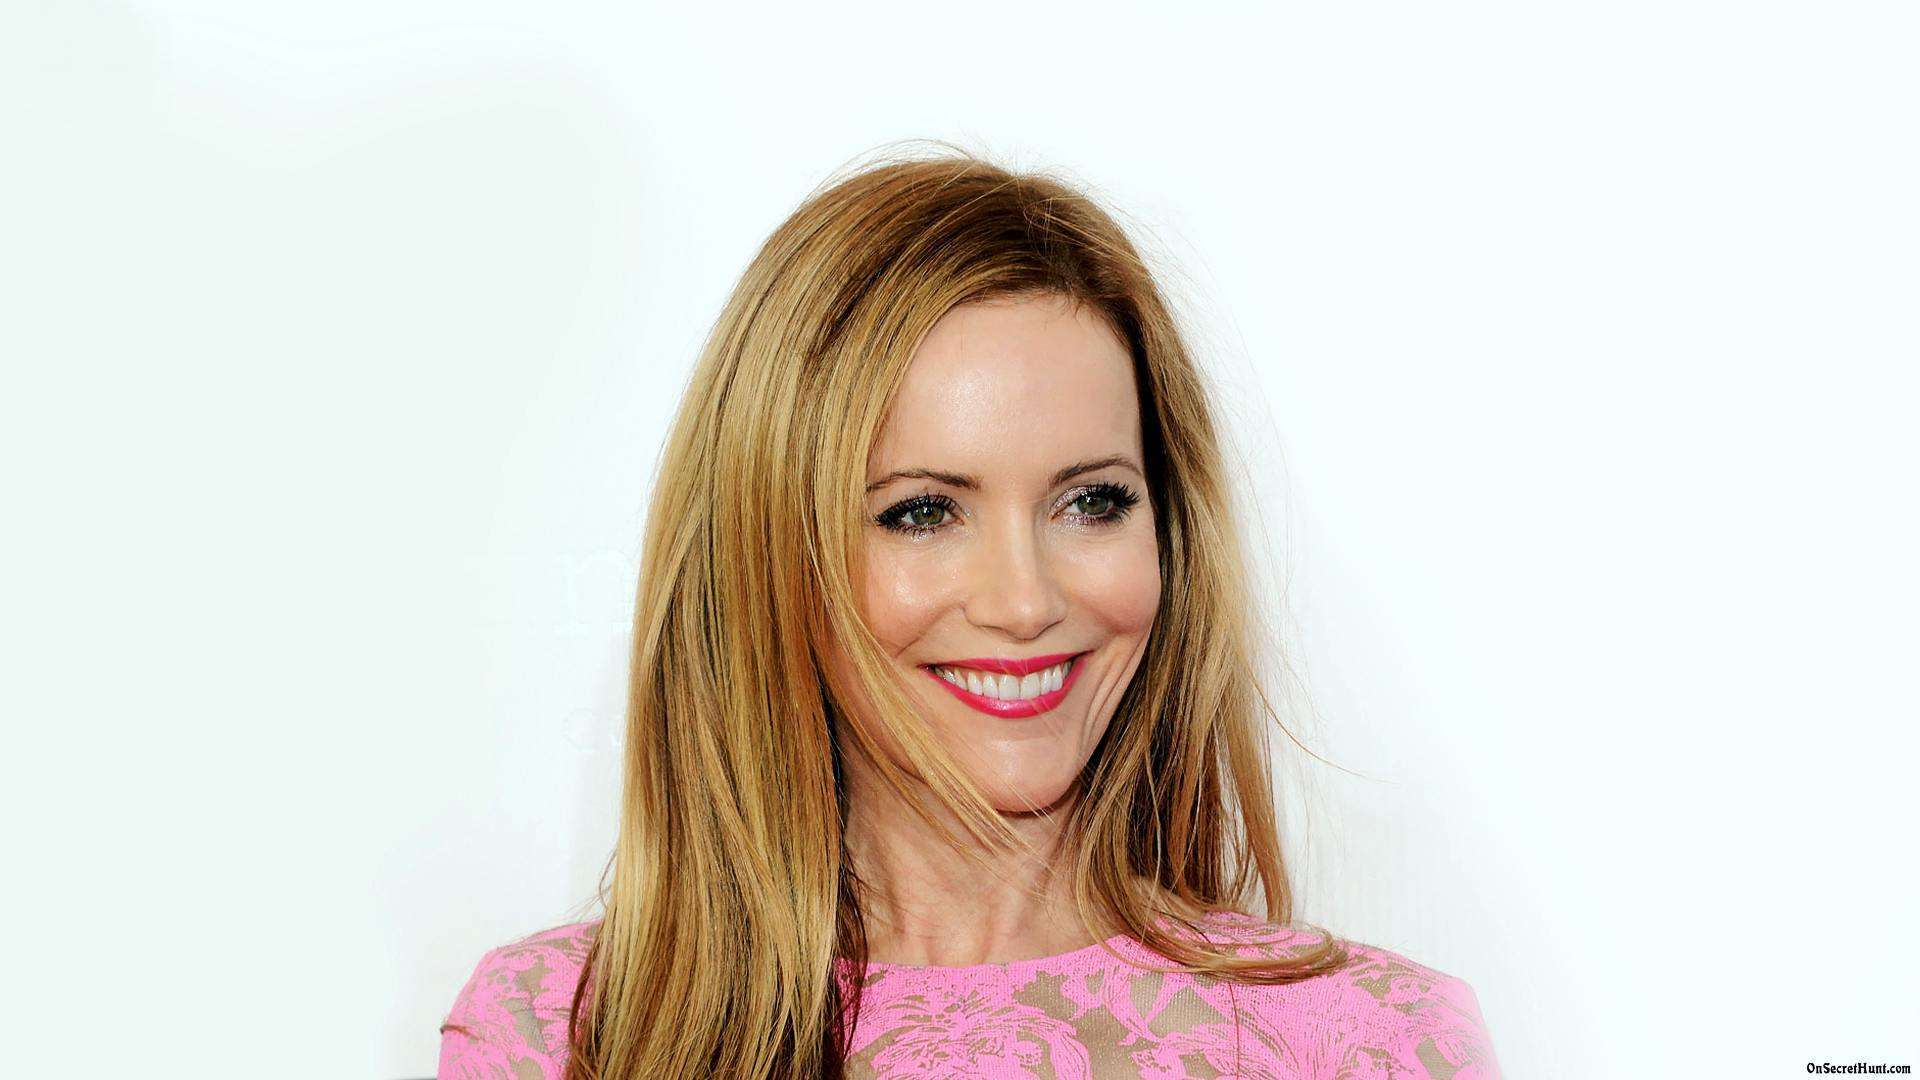 Beautiful Fall Pictures Wallpaper Leslie Mann Hd Wallpapers For Desktop Download